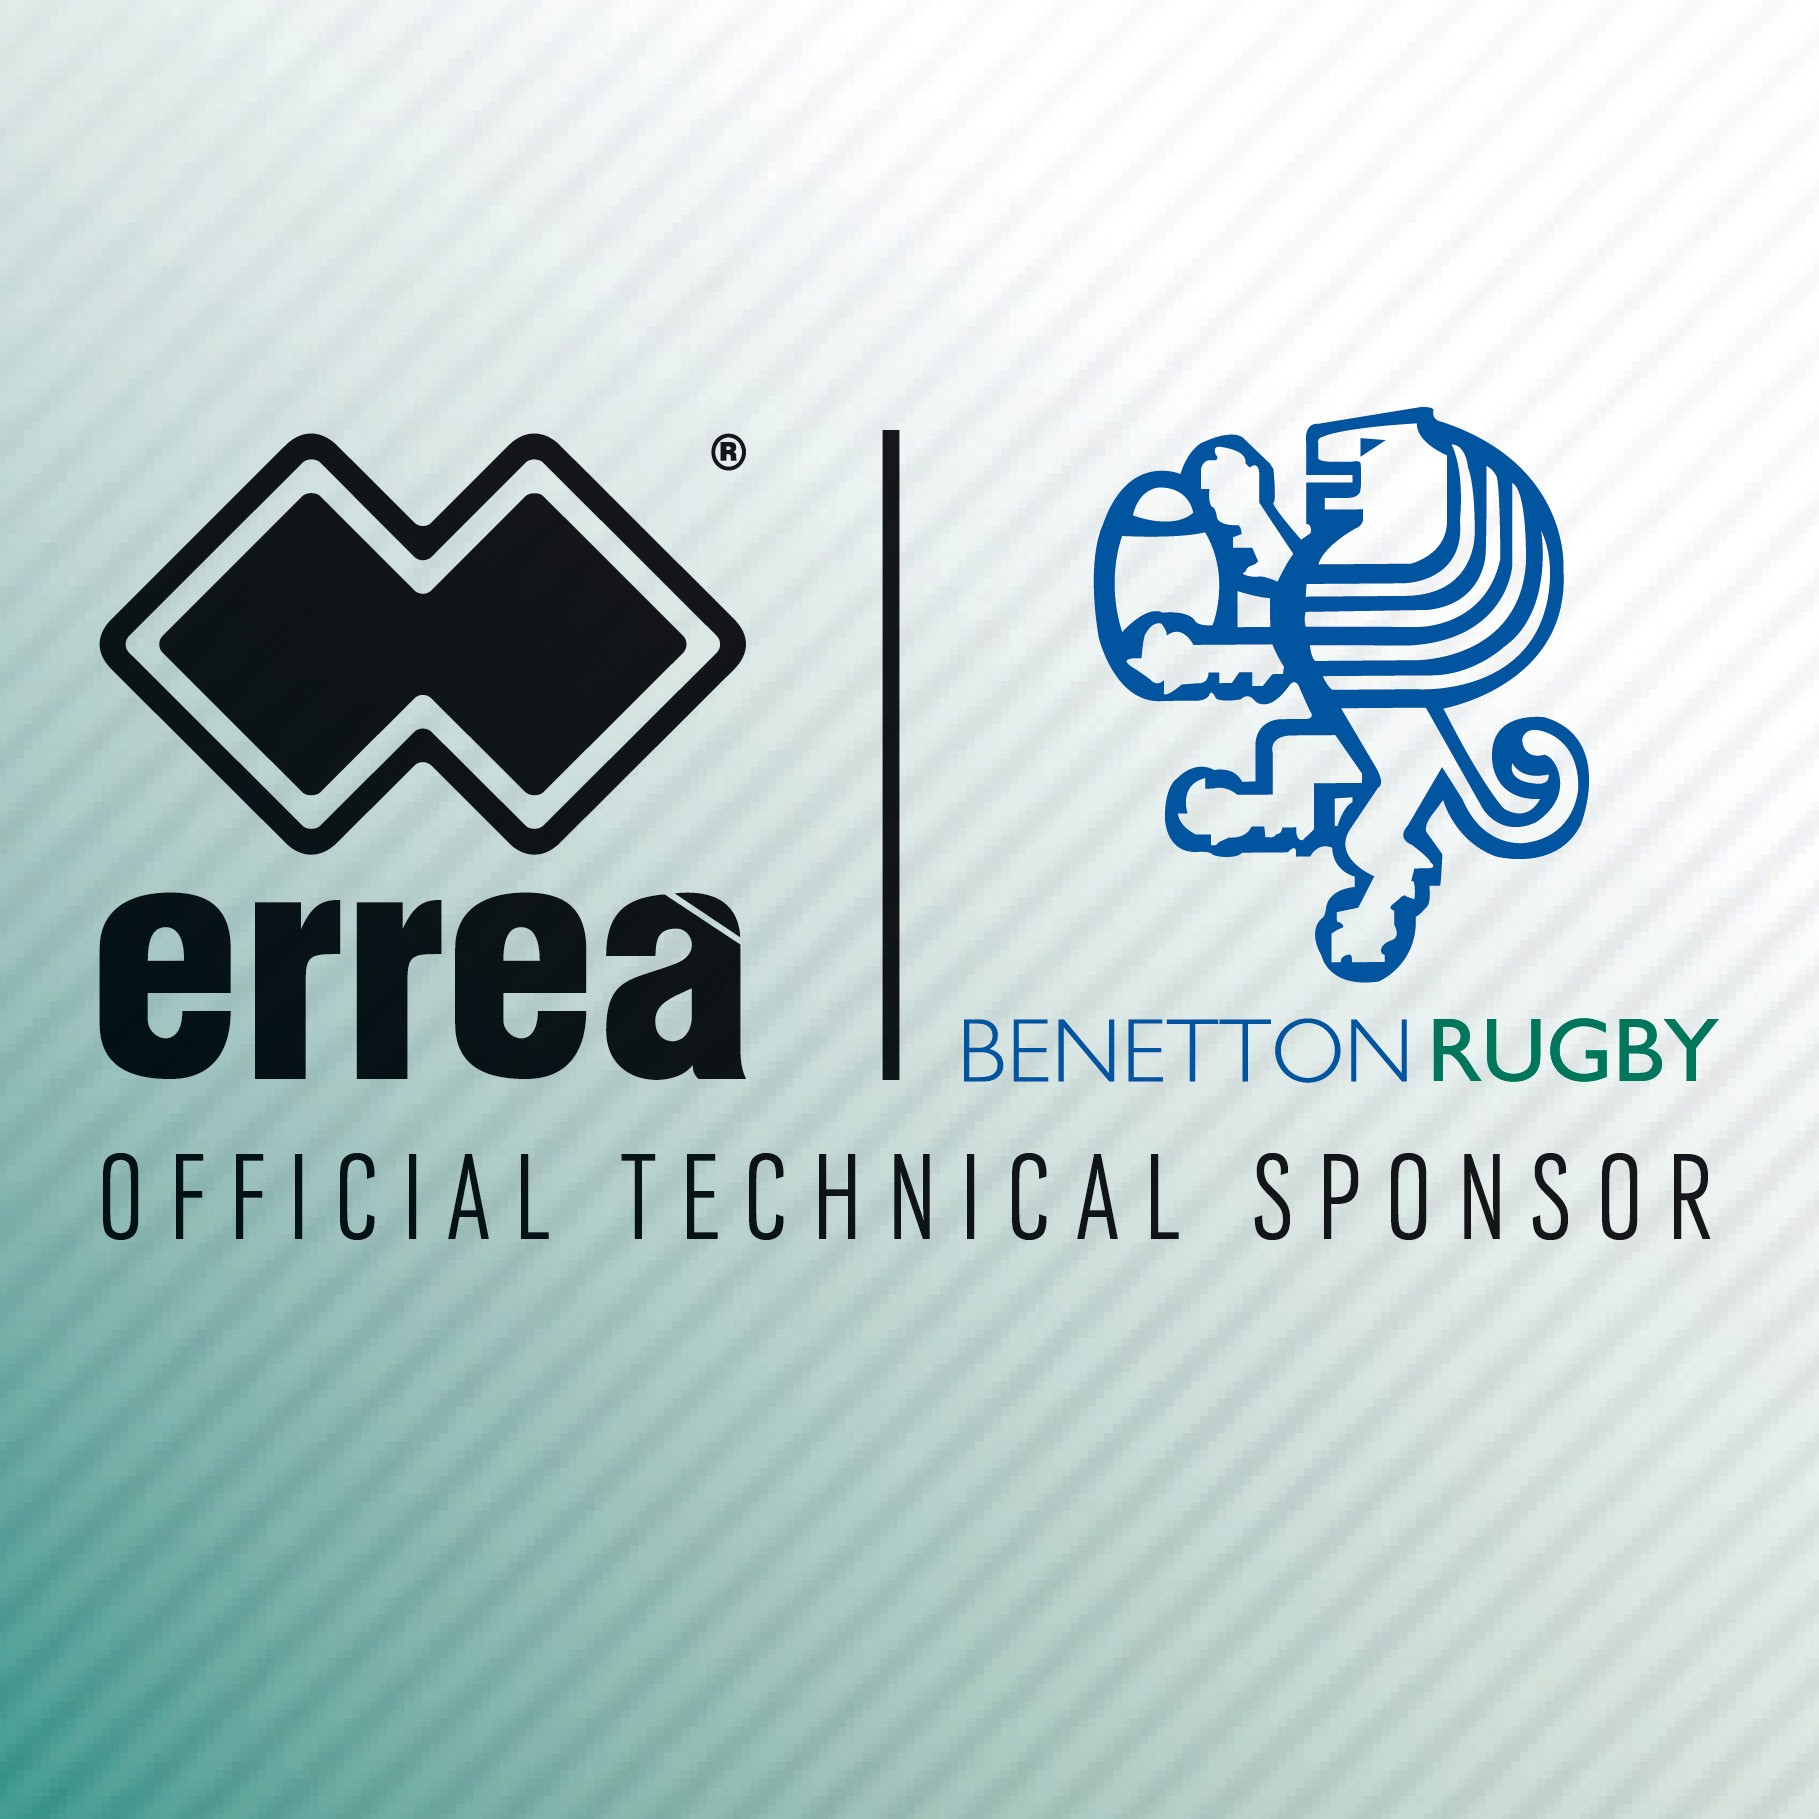 Erreà Sport is the official technical sponsor of Benetton Rugby Treviso